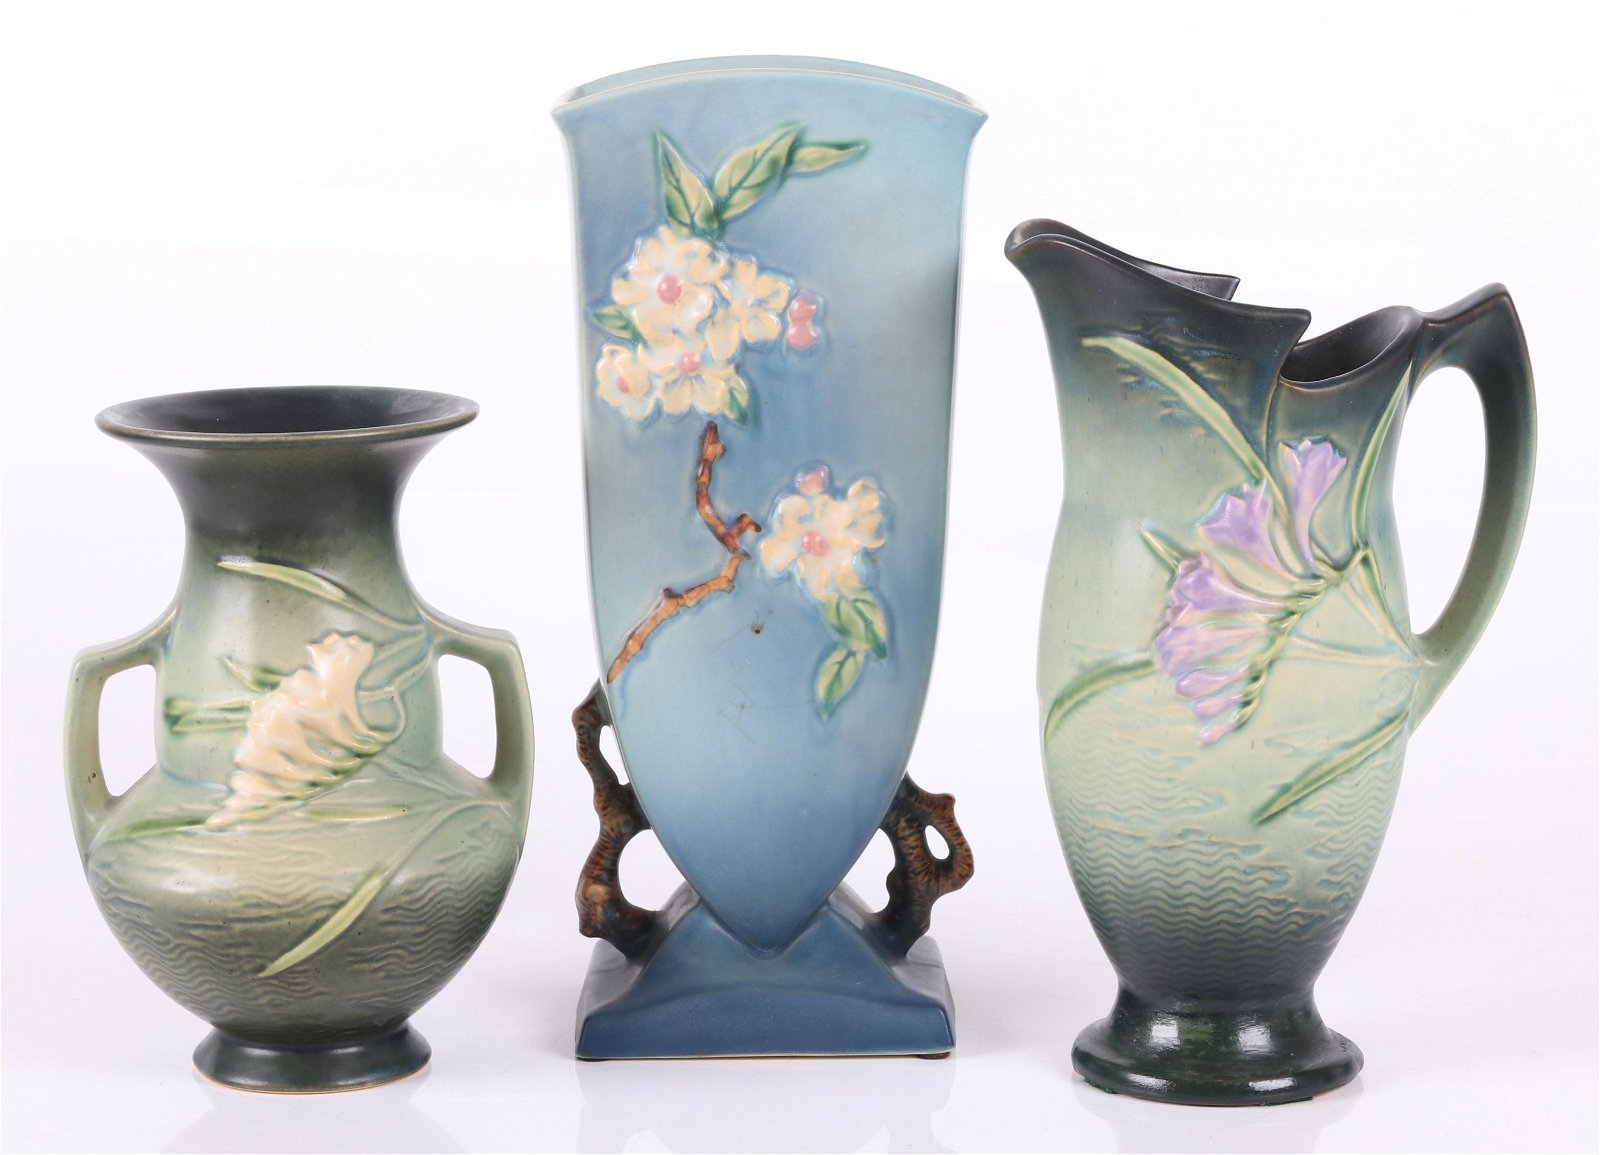 Roseville Pottery: Two Vases and a Pitcher